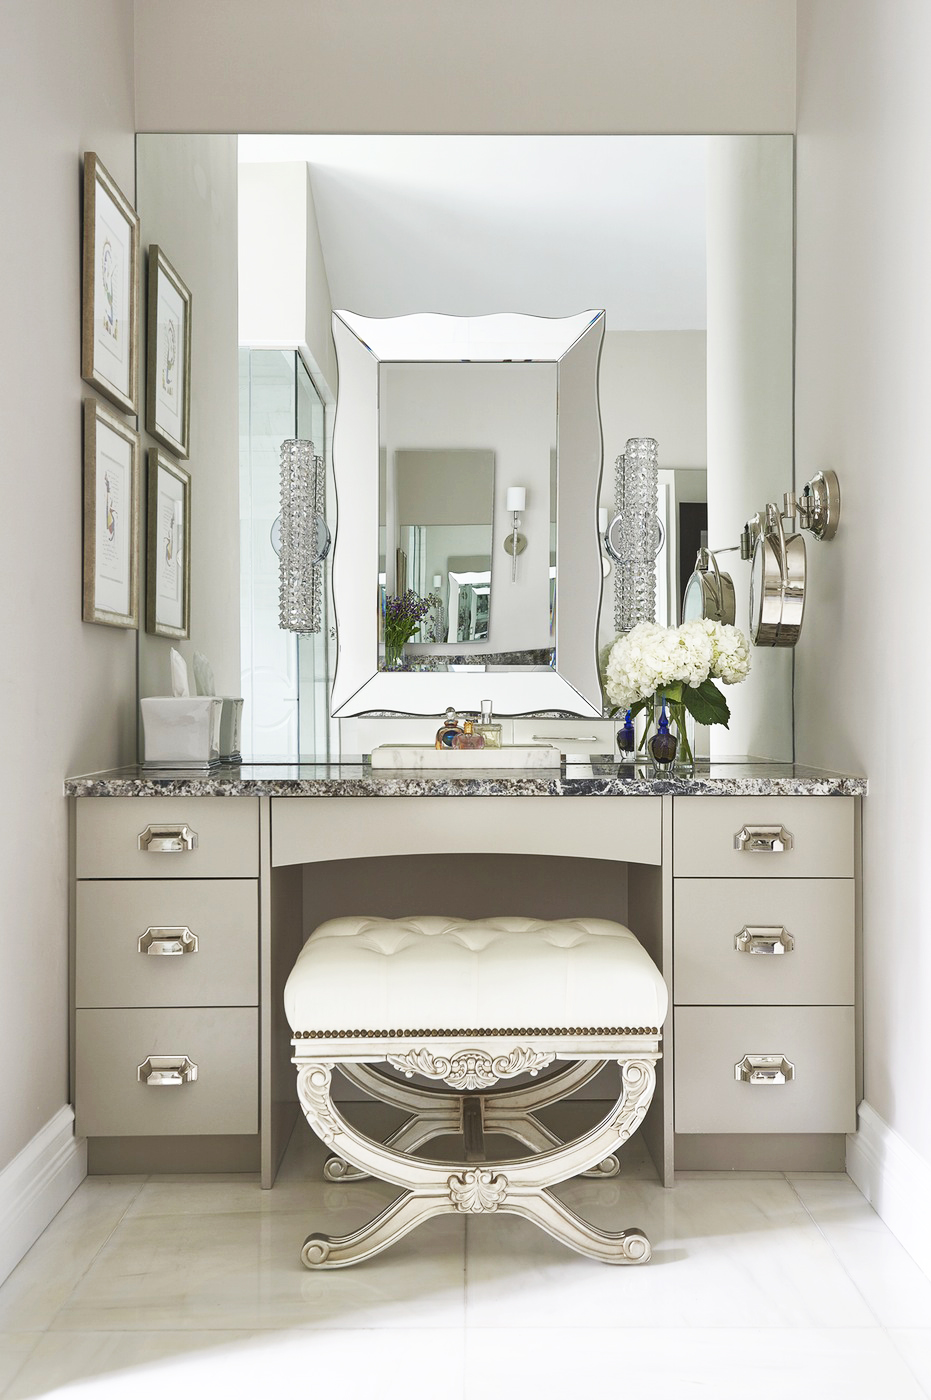 makeup chair vanity table instagram walk in closet girly feminine white and beige washroom quartz granite countertop